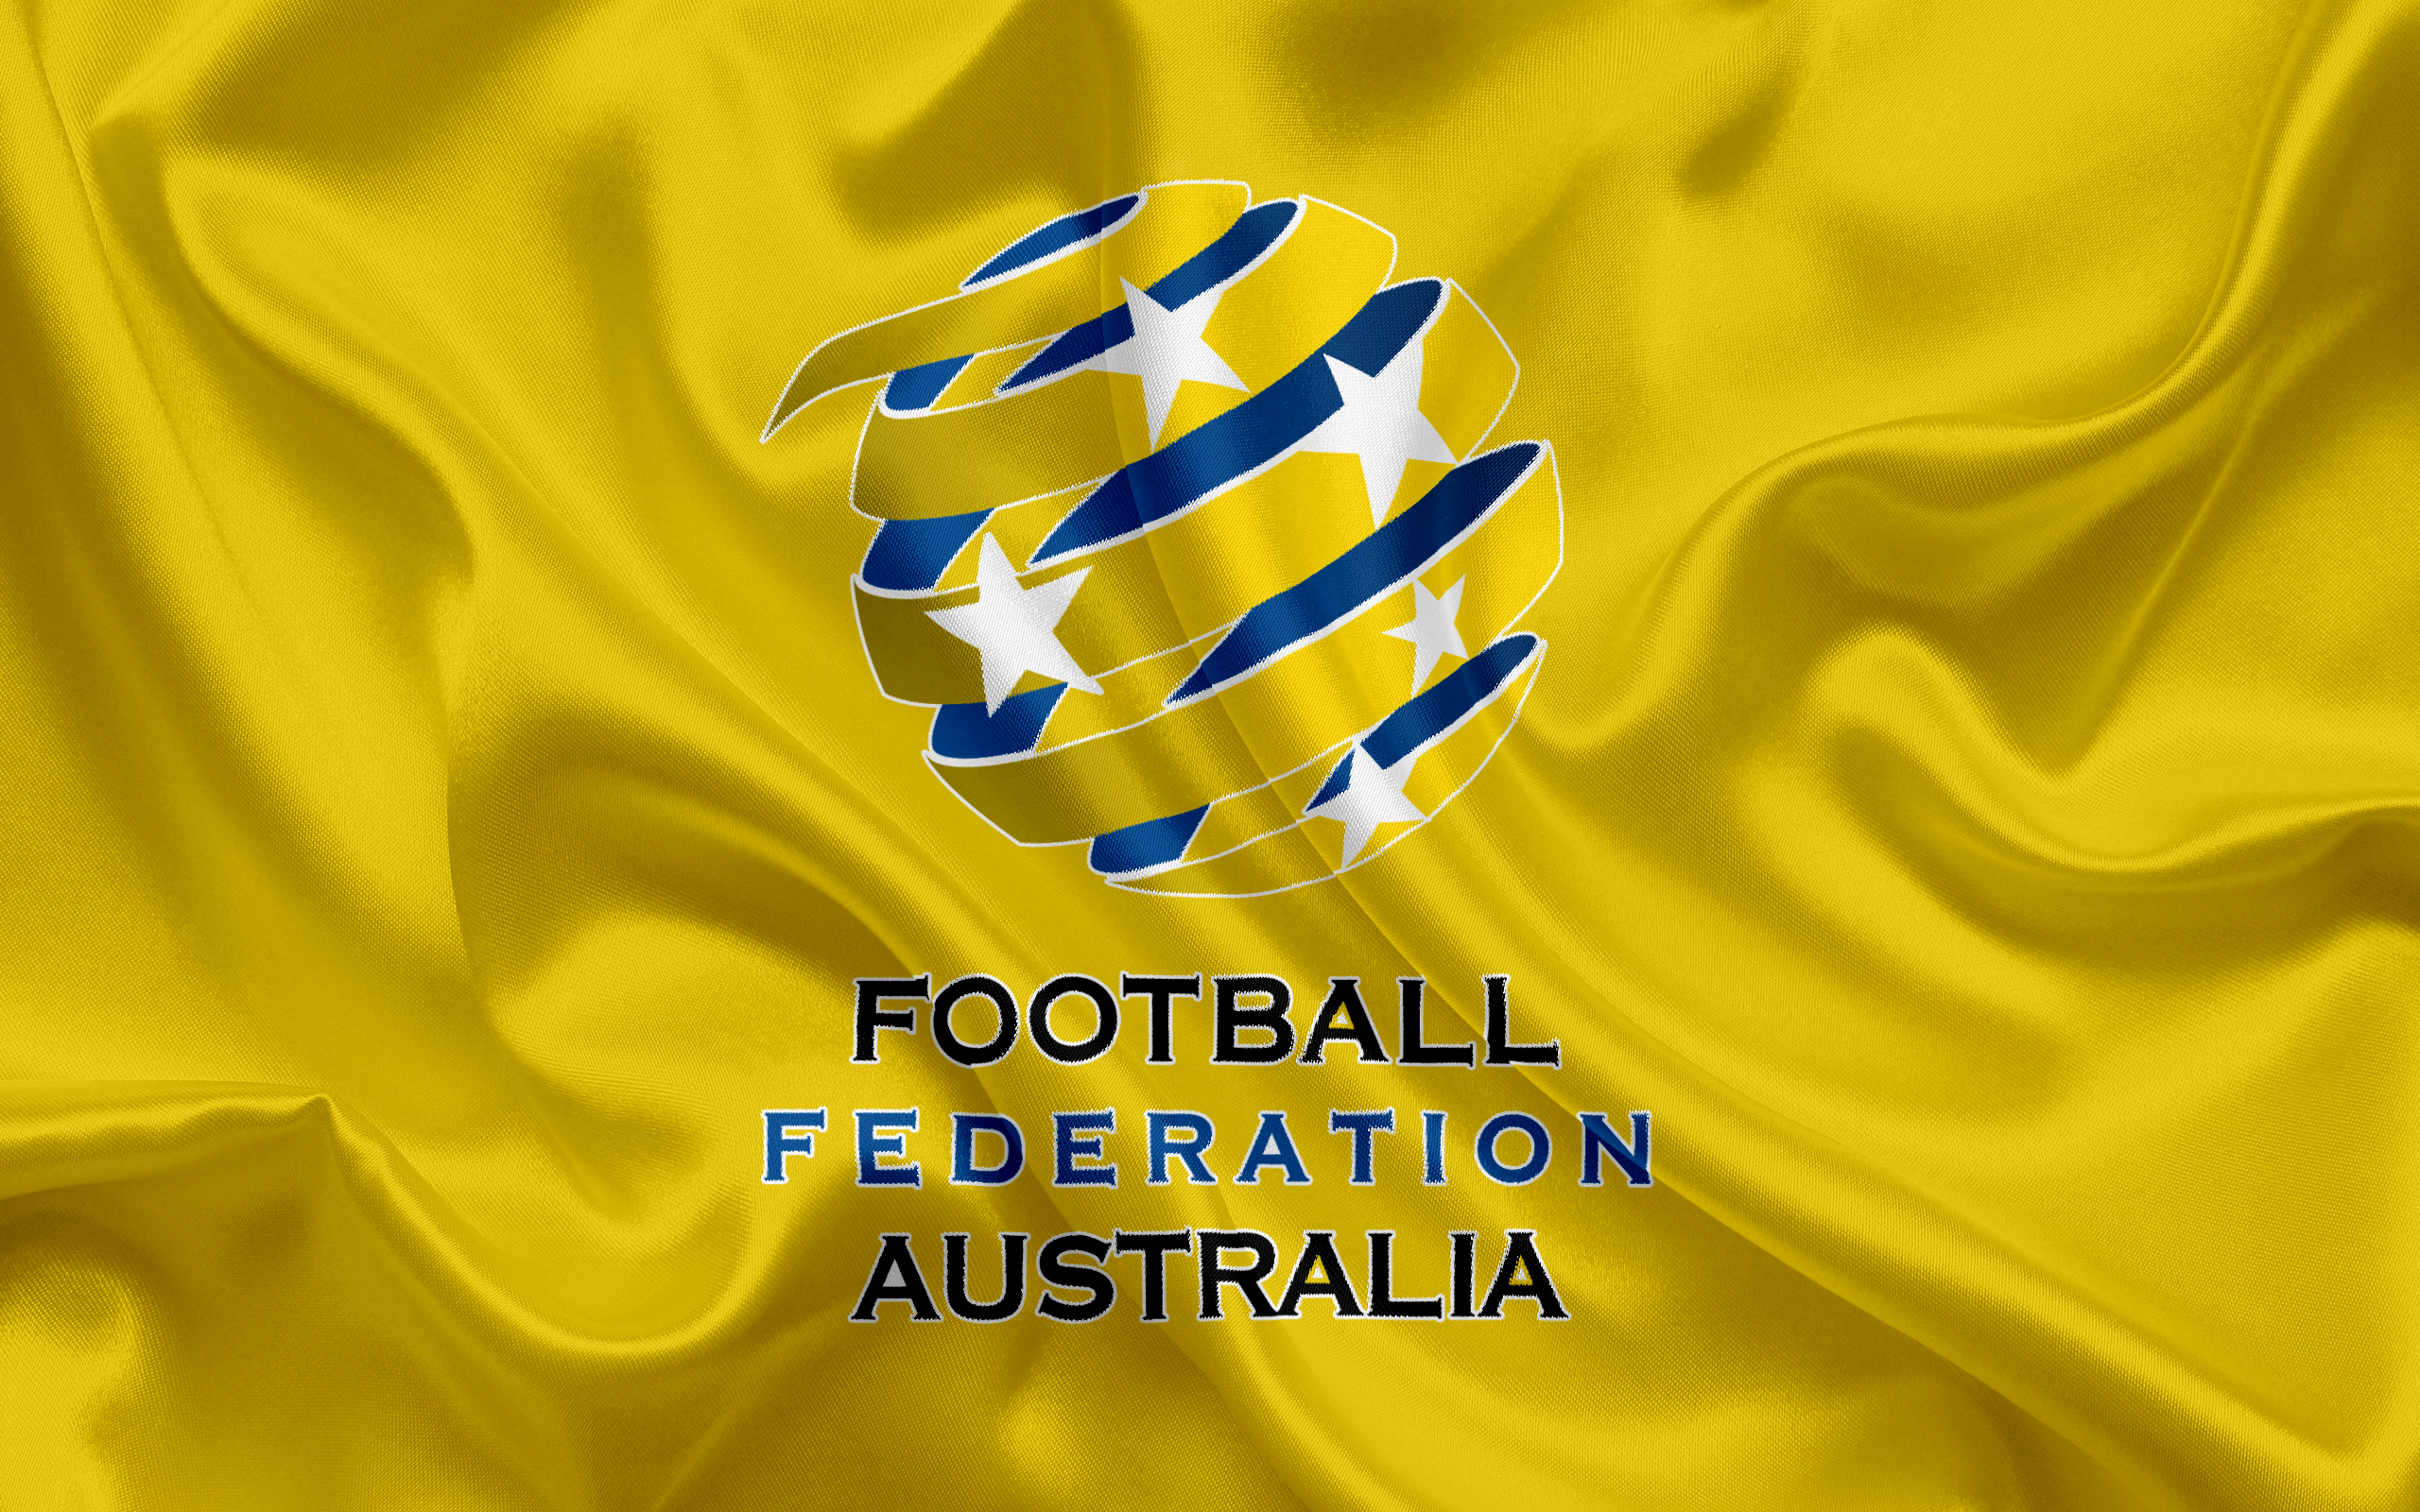 Australia National Soccer Team Hd Wallpaper Hintergrund 2560x1600 Id 979216 Wallpaper Abyss